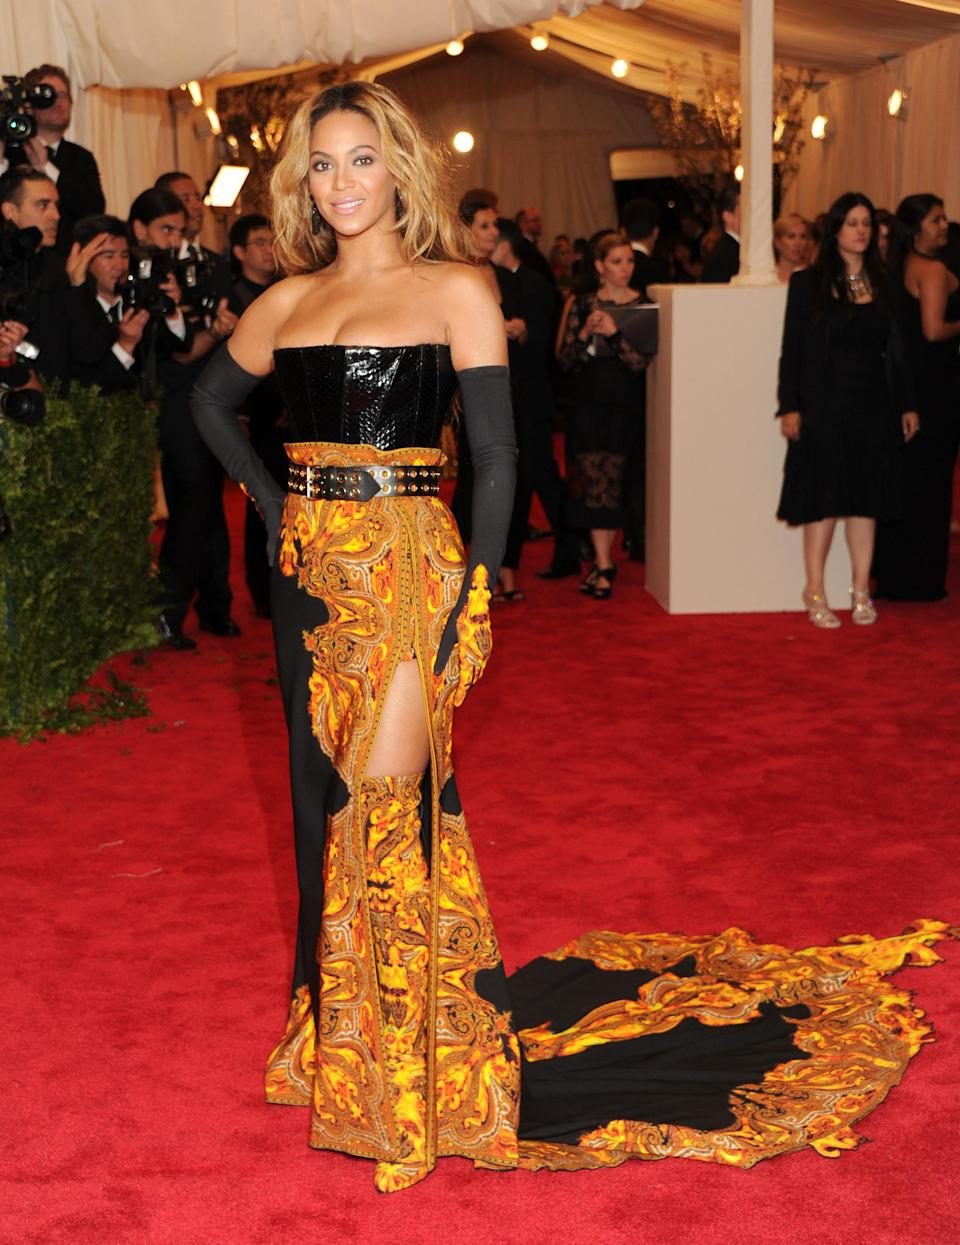 """Beyonce Knowles attends The Metropolitan Museum of Art's Costume Institute benefit celebrating """"PUNK: Chaos to Couture"""" on Monday, May 6, 2013, in New York. (Photo by Evan Agostini/Invision/AP)"""